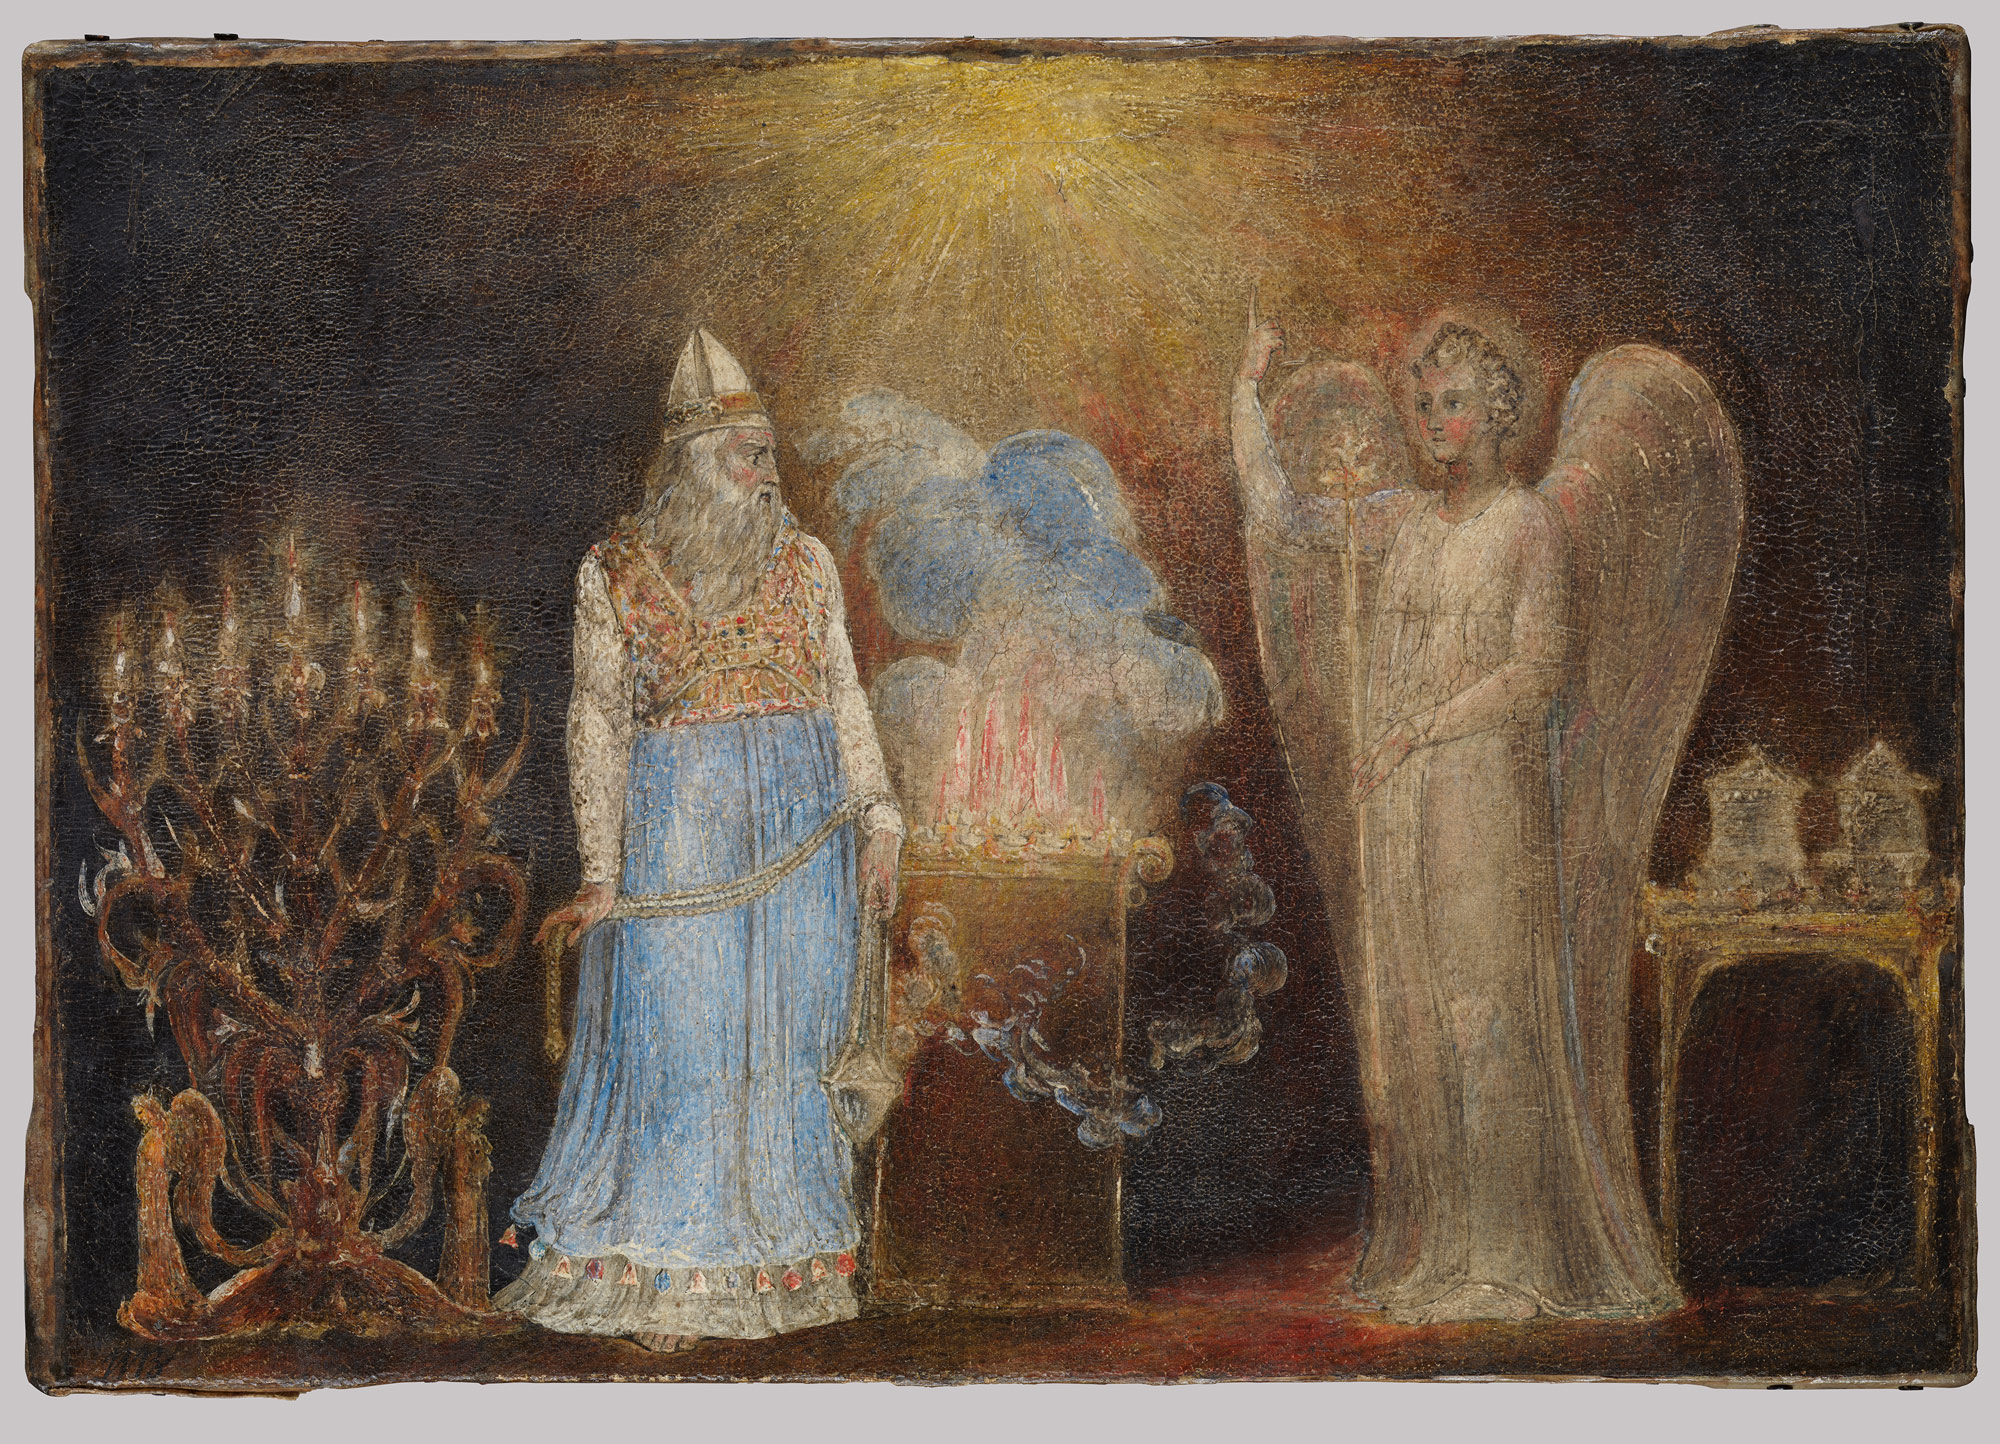 The Angel Gabriel Appearing to Zacharias